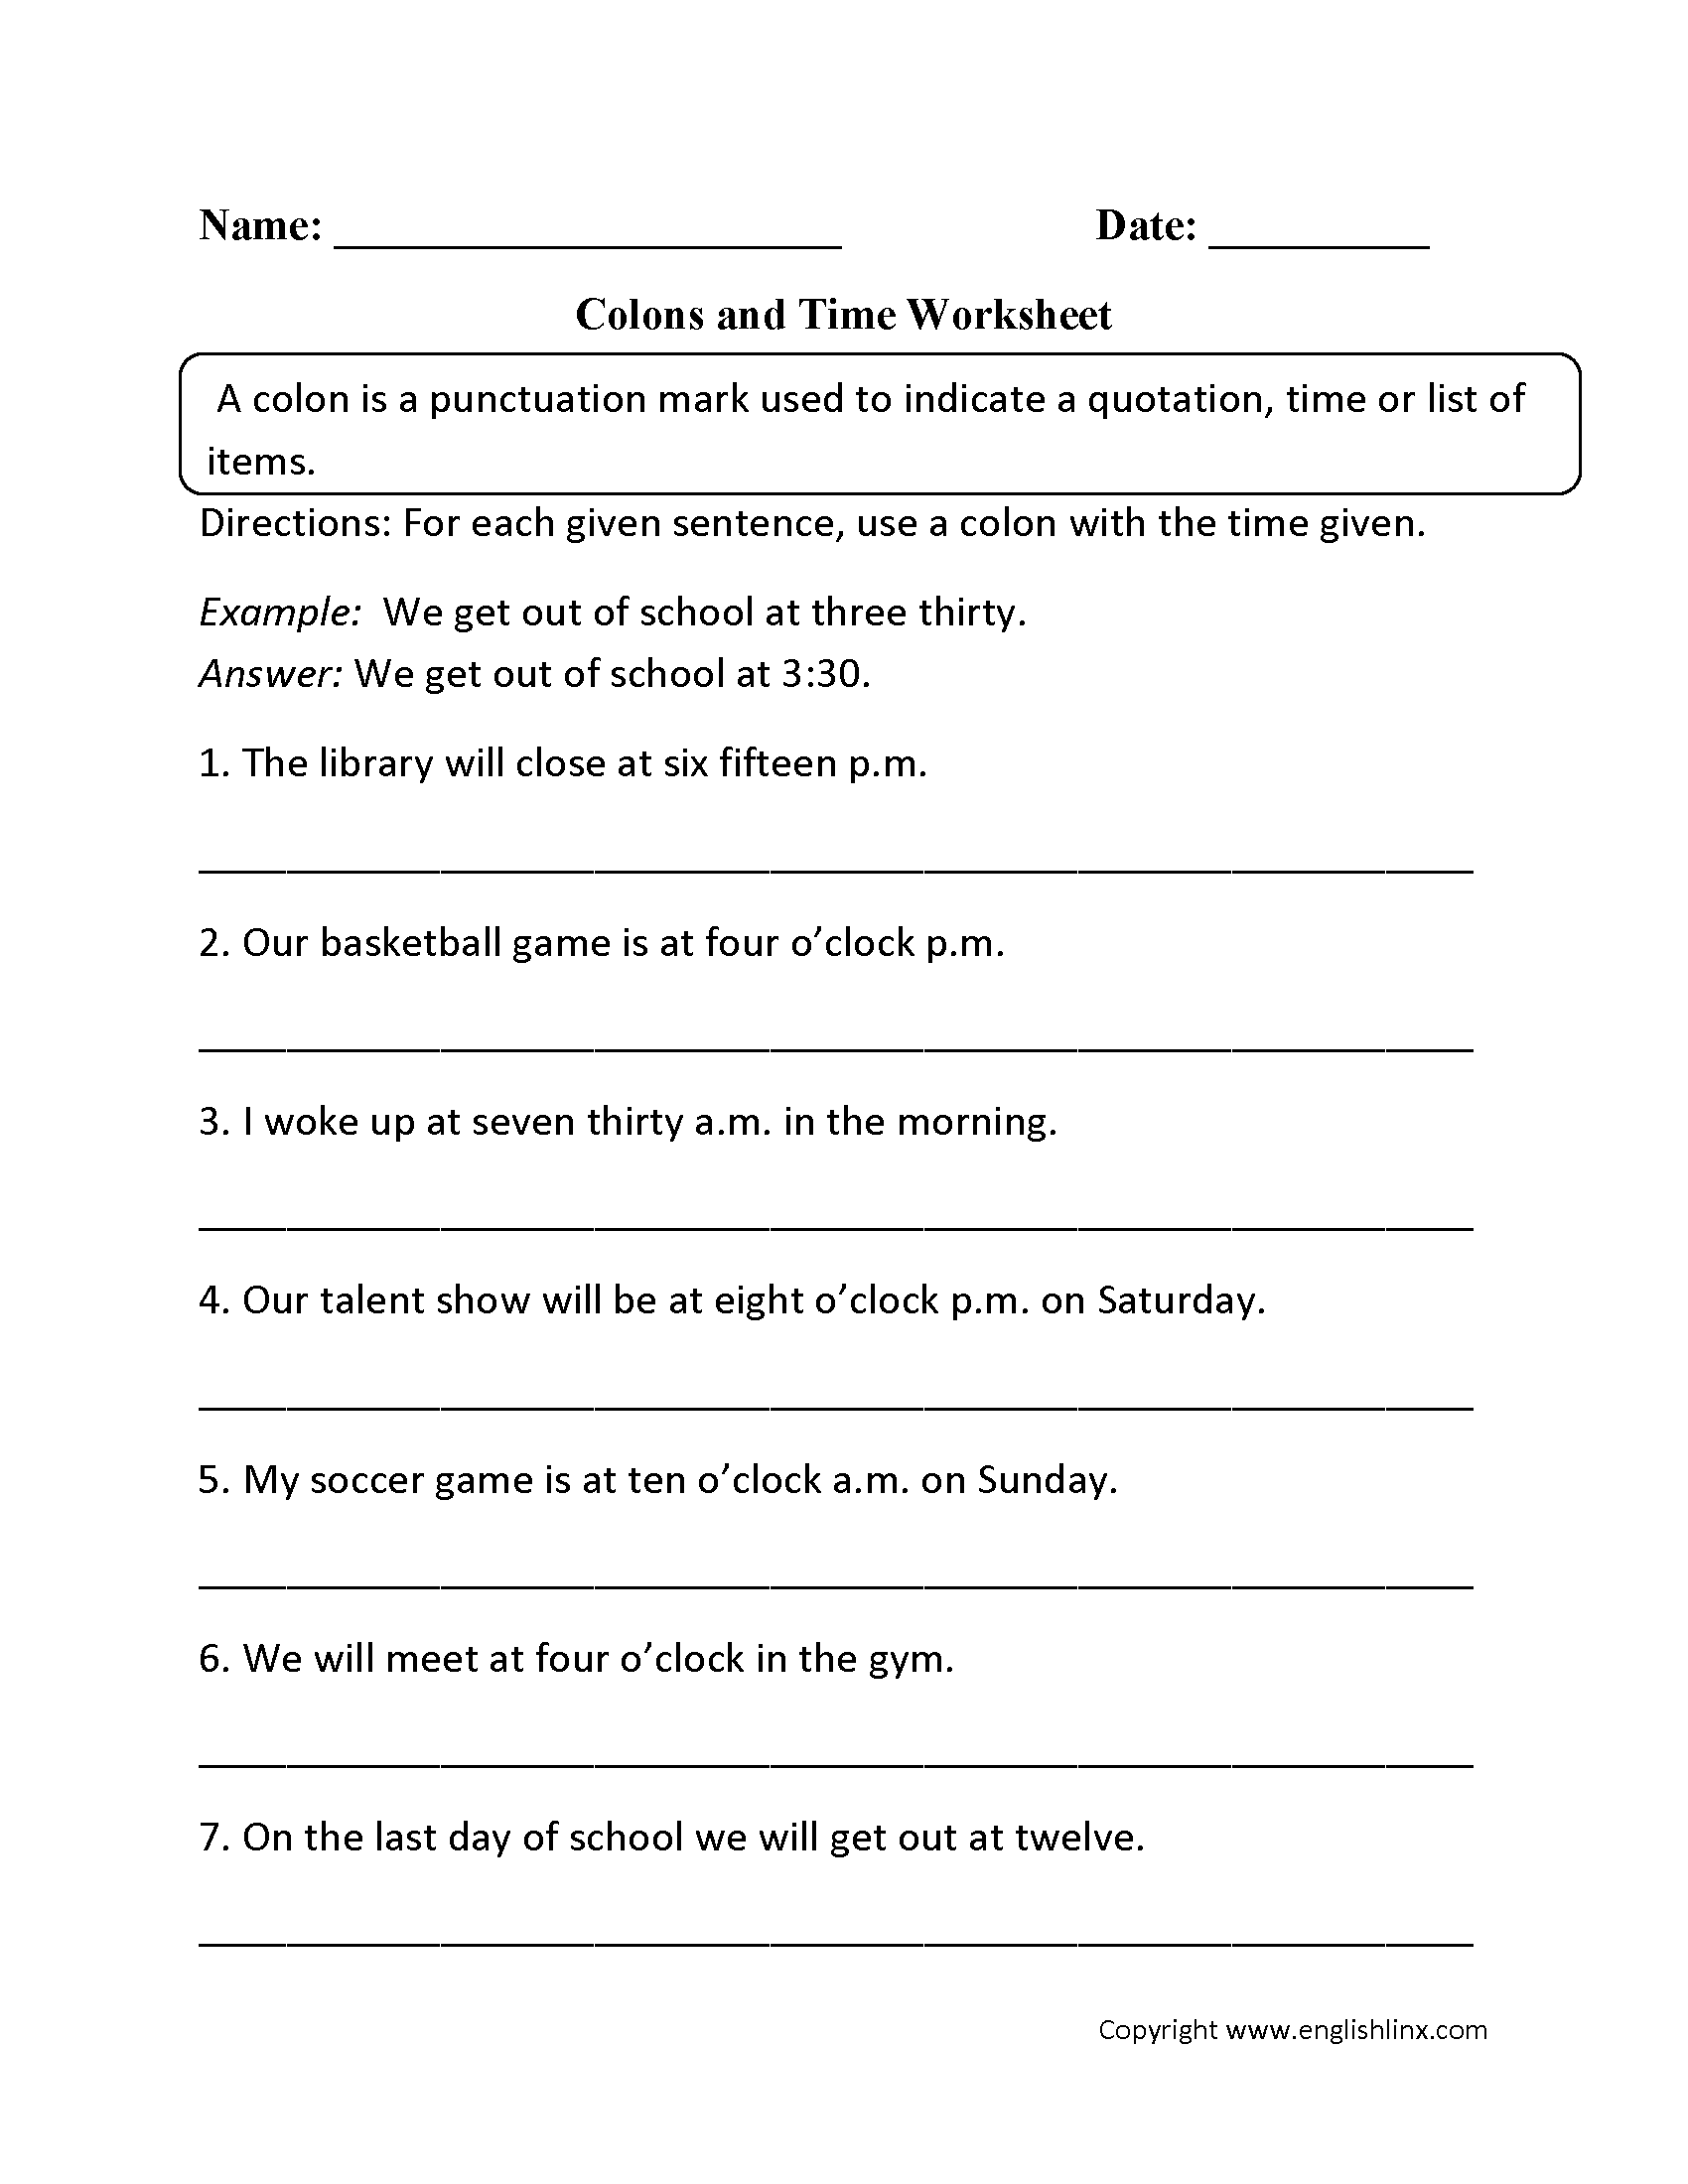 Worksheets Grammar Worksheets For 6th Grade punctuation worksheets colon worksheets